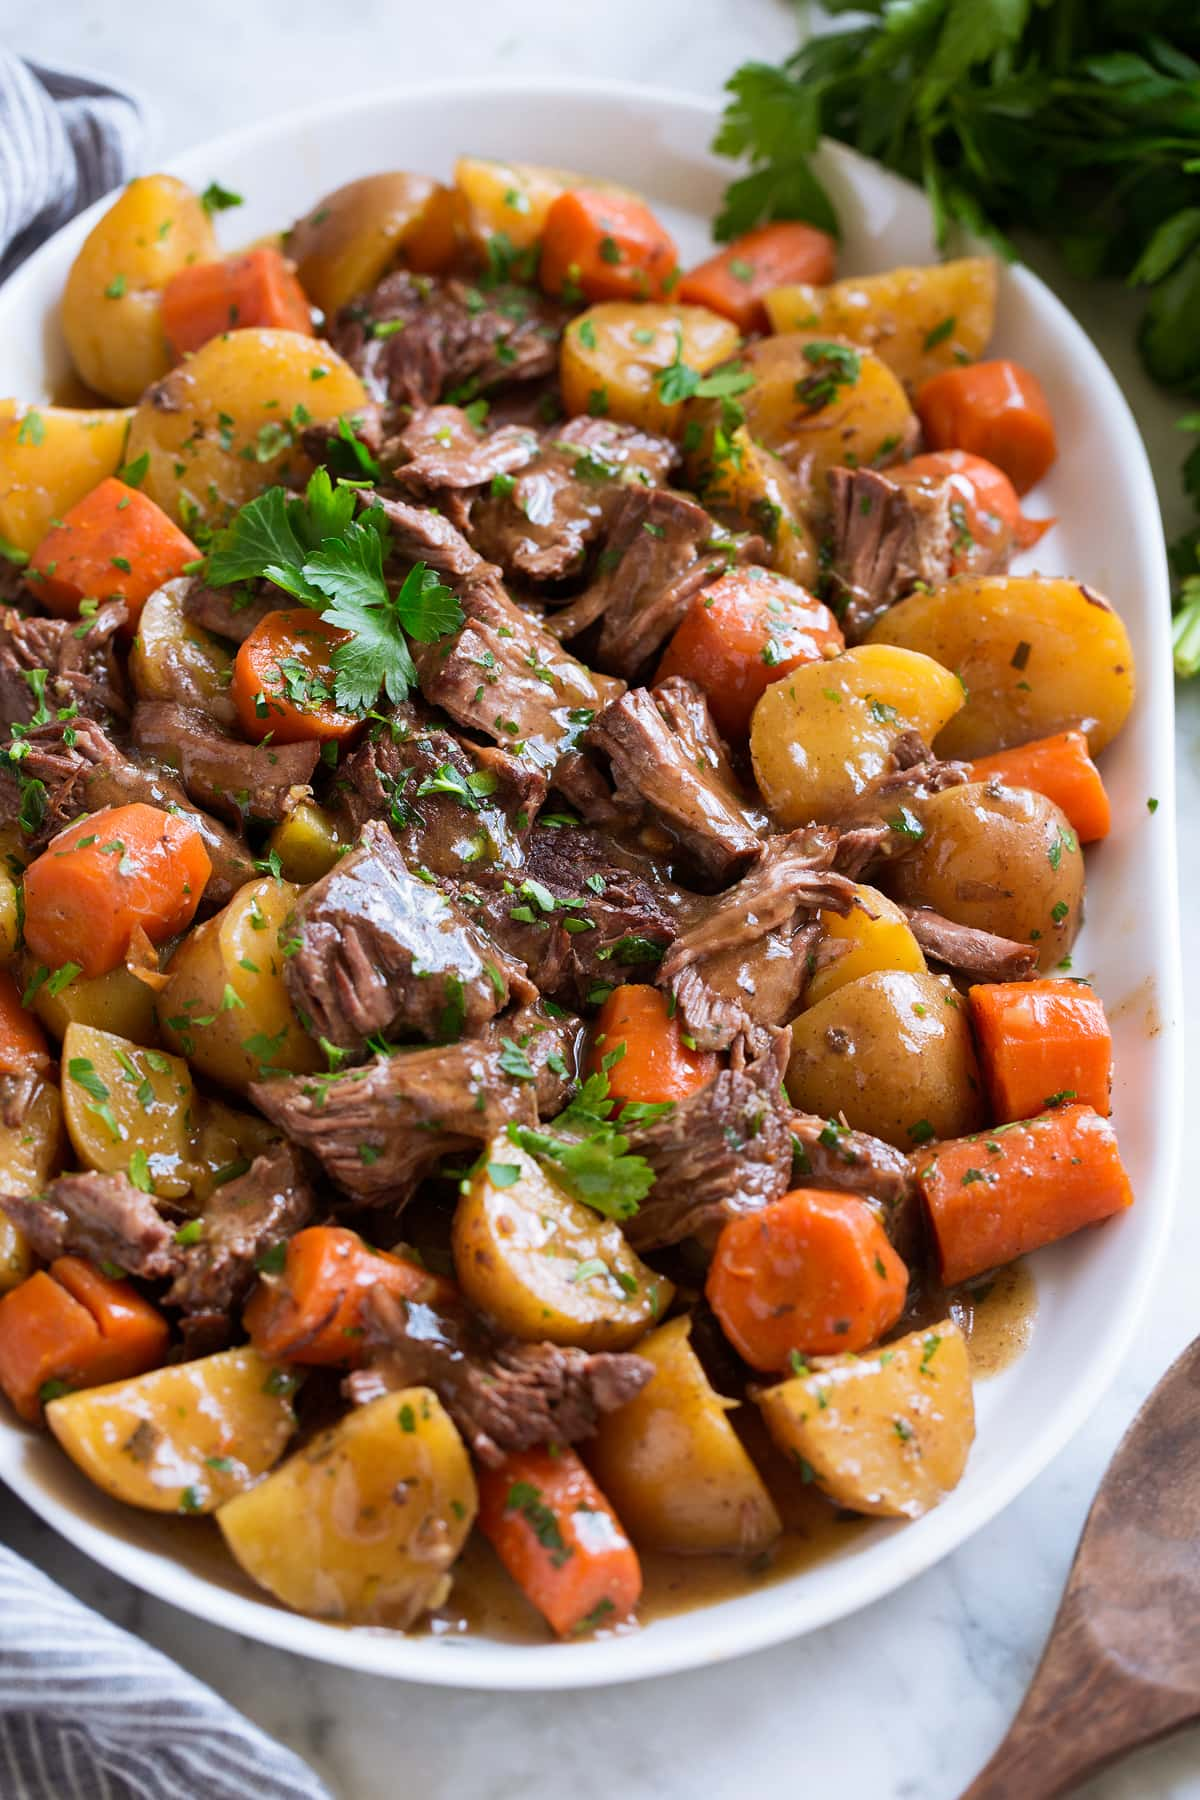 Shredded slow cooker pot roast with potatoes and carrots on a white serving platter garnished with parsley.